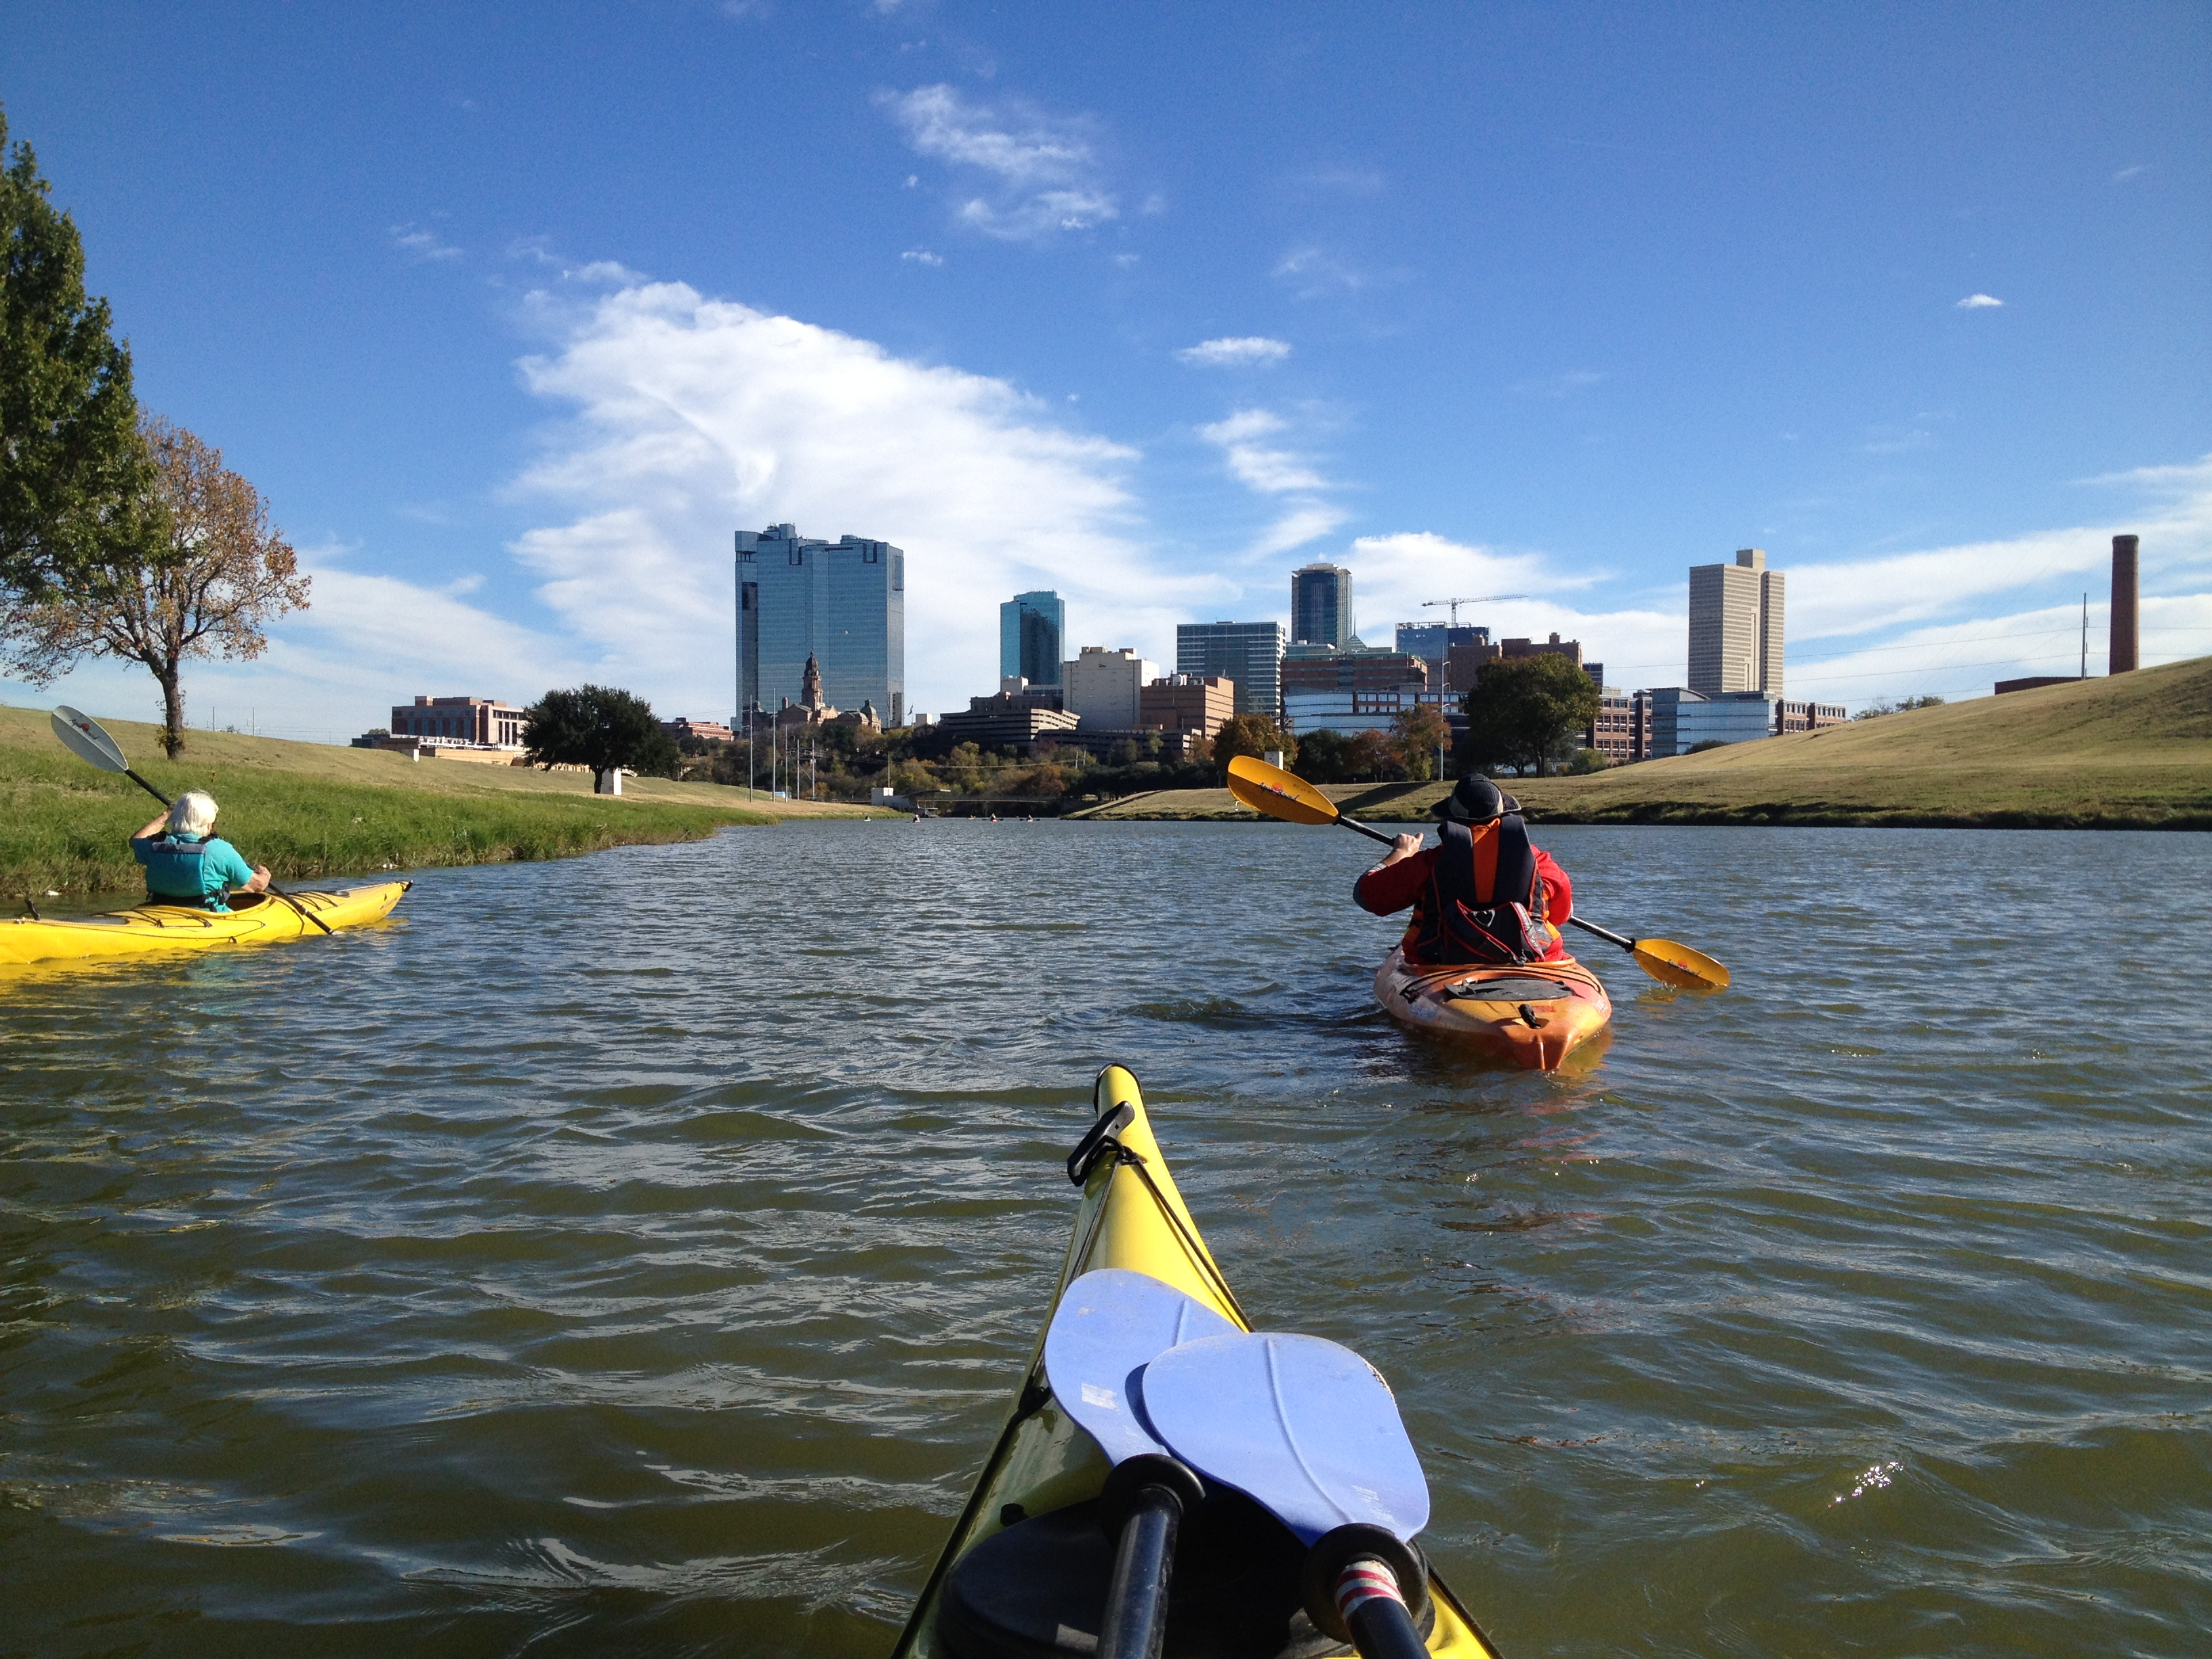 Three people kayaking on a river lined with grass and dotted by a couple of trees on a sunny day, a city with tall buildings in the distance.